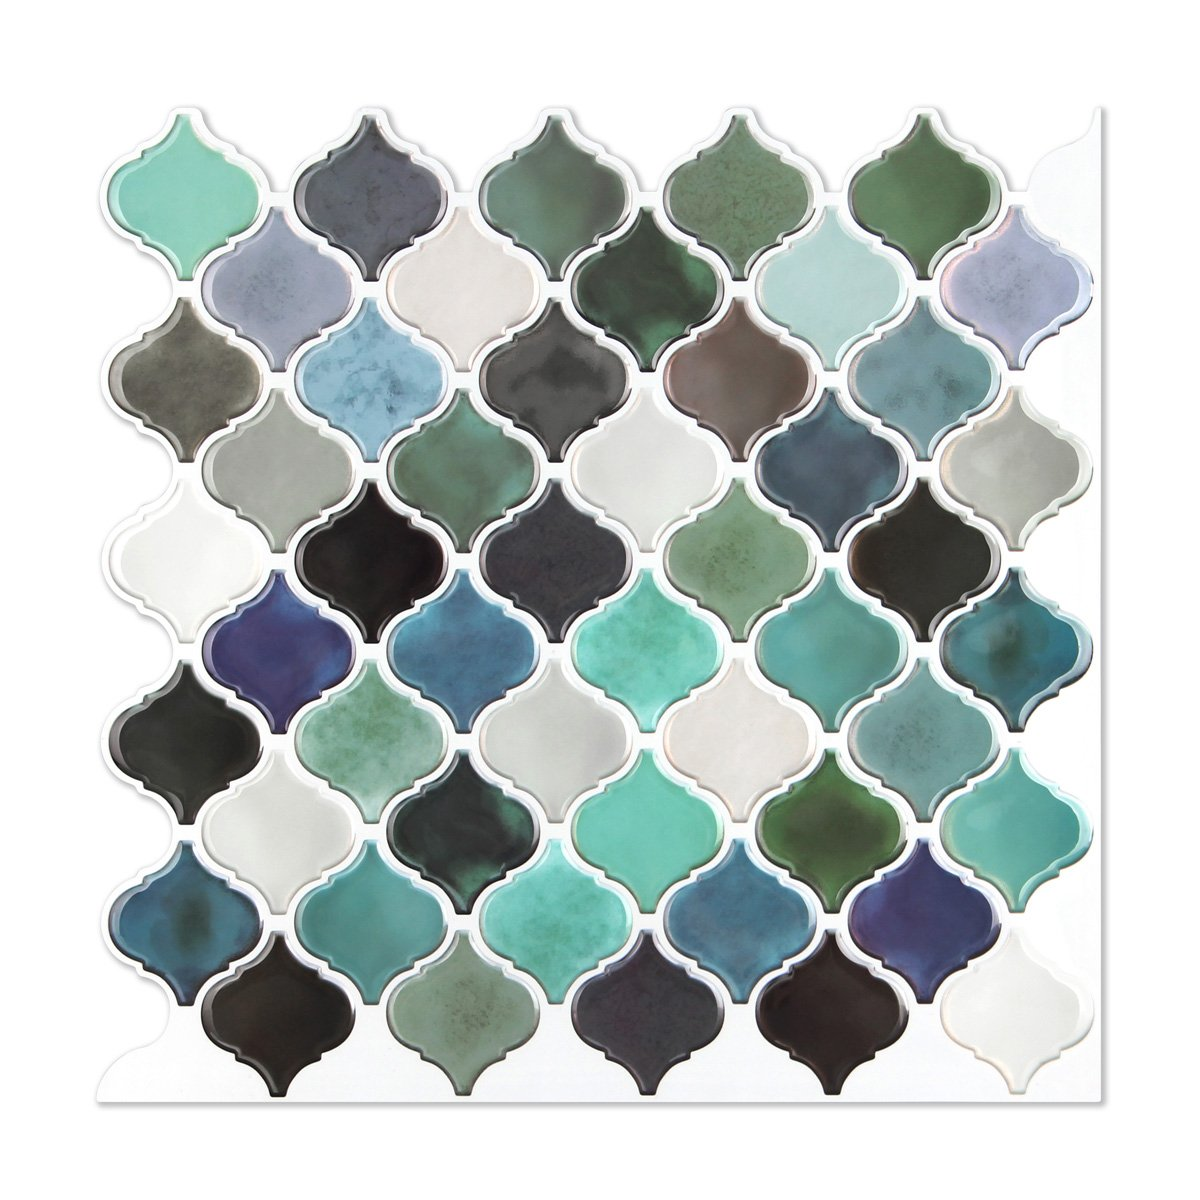 Arabesque Mosaic Wall Stick Tiles Peel and Stick Self-Adhesive DIY Backsplash Stick-on Vinyl Wall Tiles for Kitchen and Bathroom 10'' X 10'' Each, 4 Sheets Pack (Blue Green Mixed)